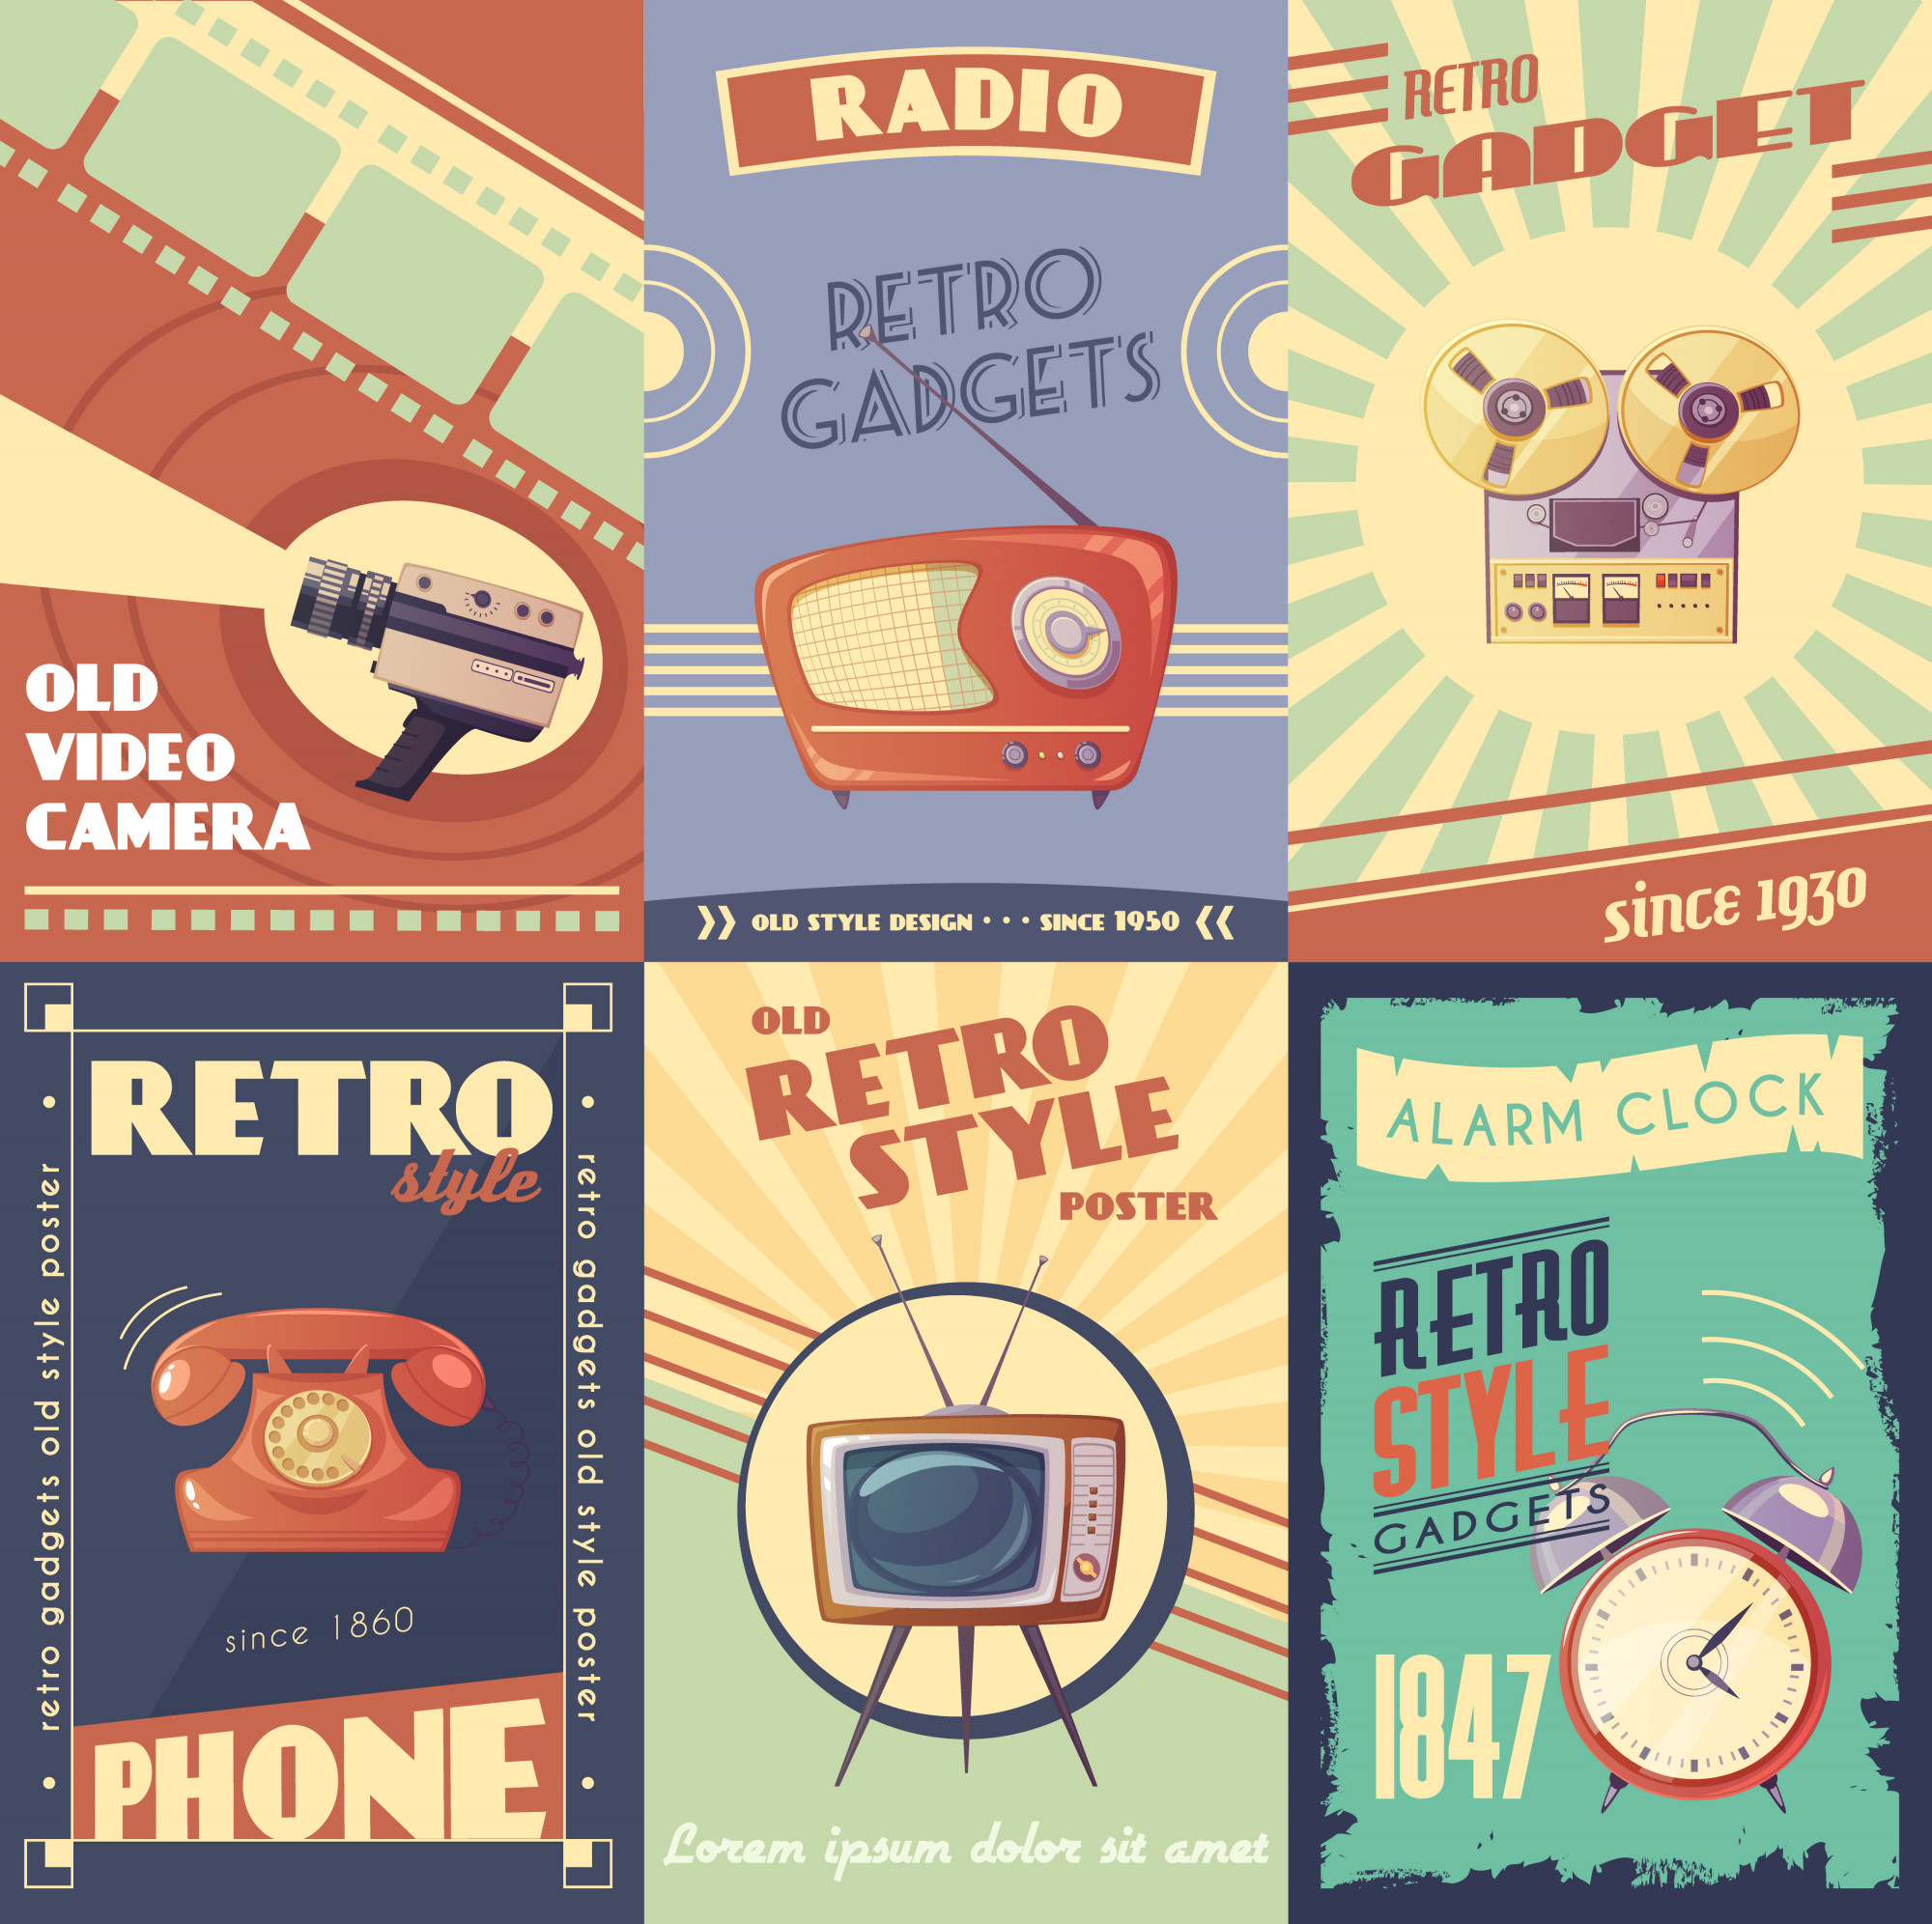 Retro gadgets cartoon posters met camera radio muzikale speler telefoon tv wekker